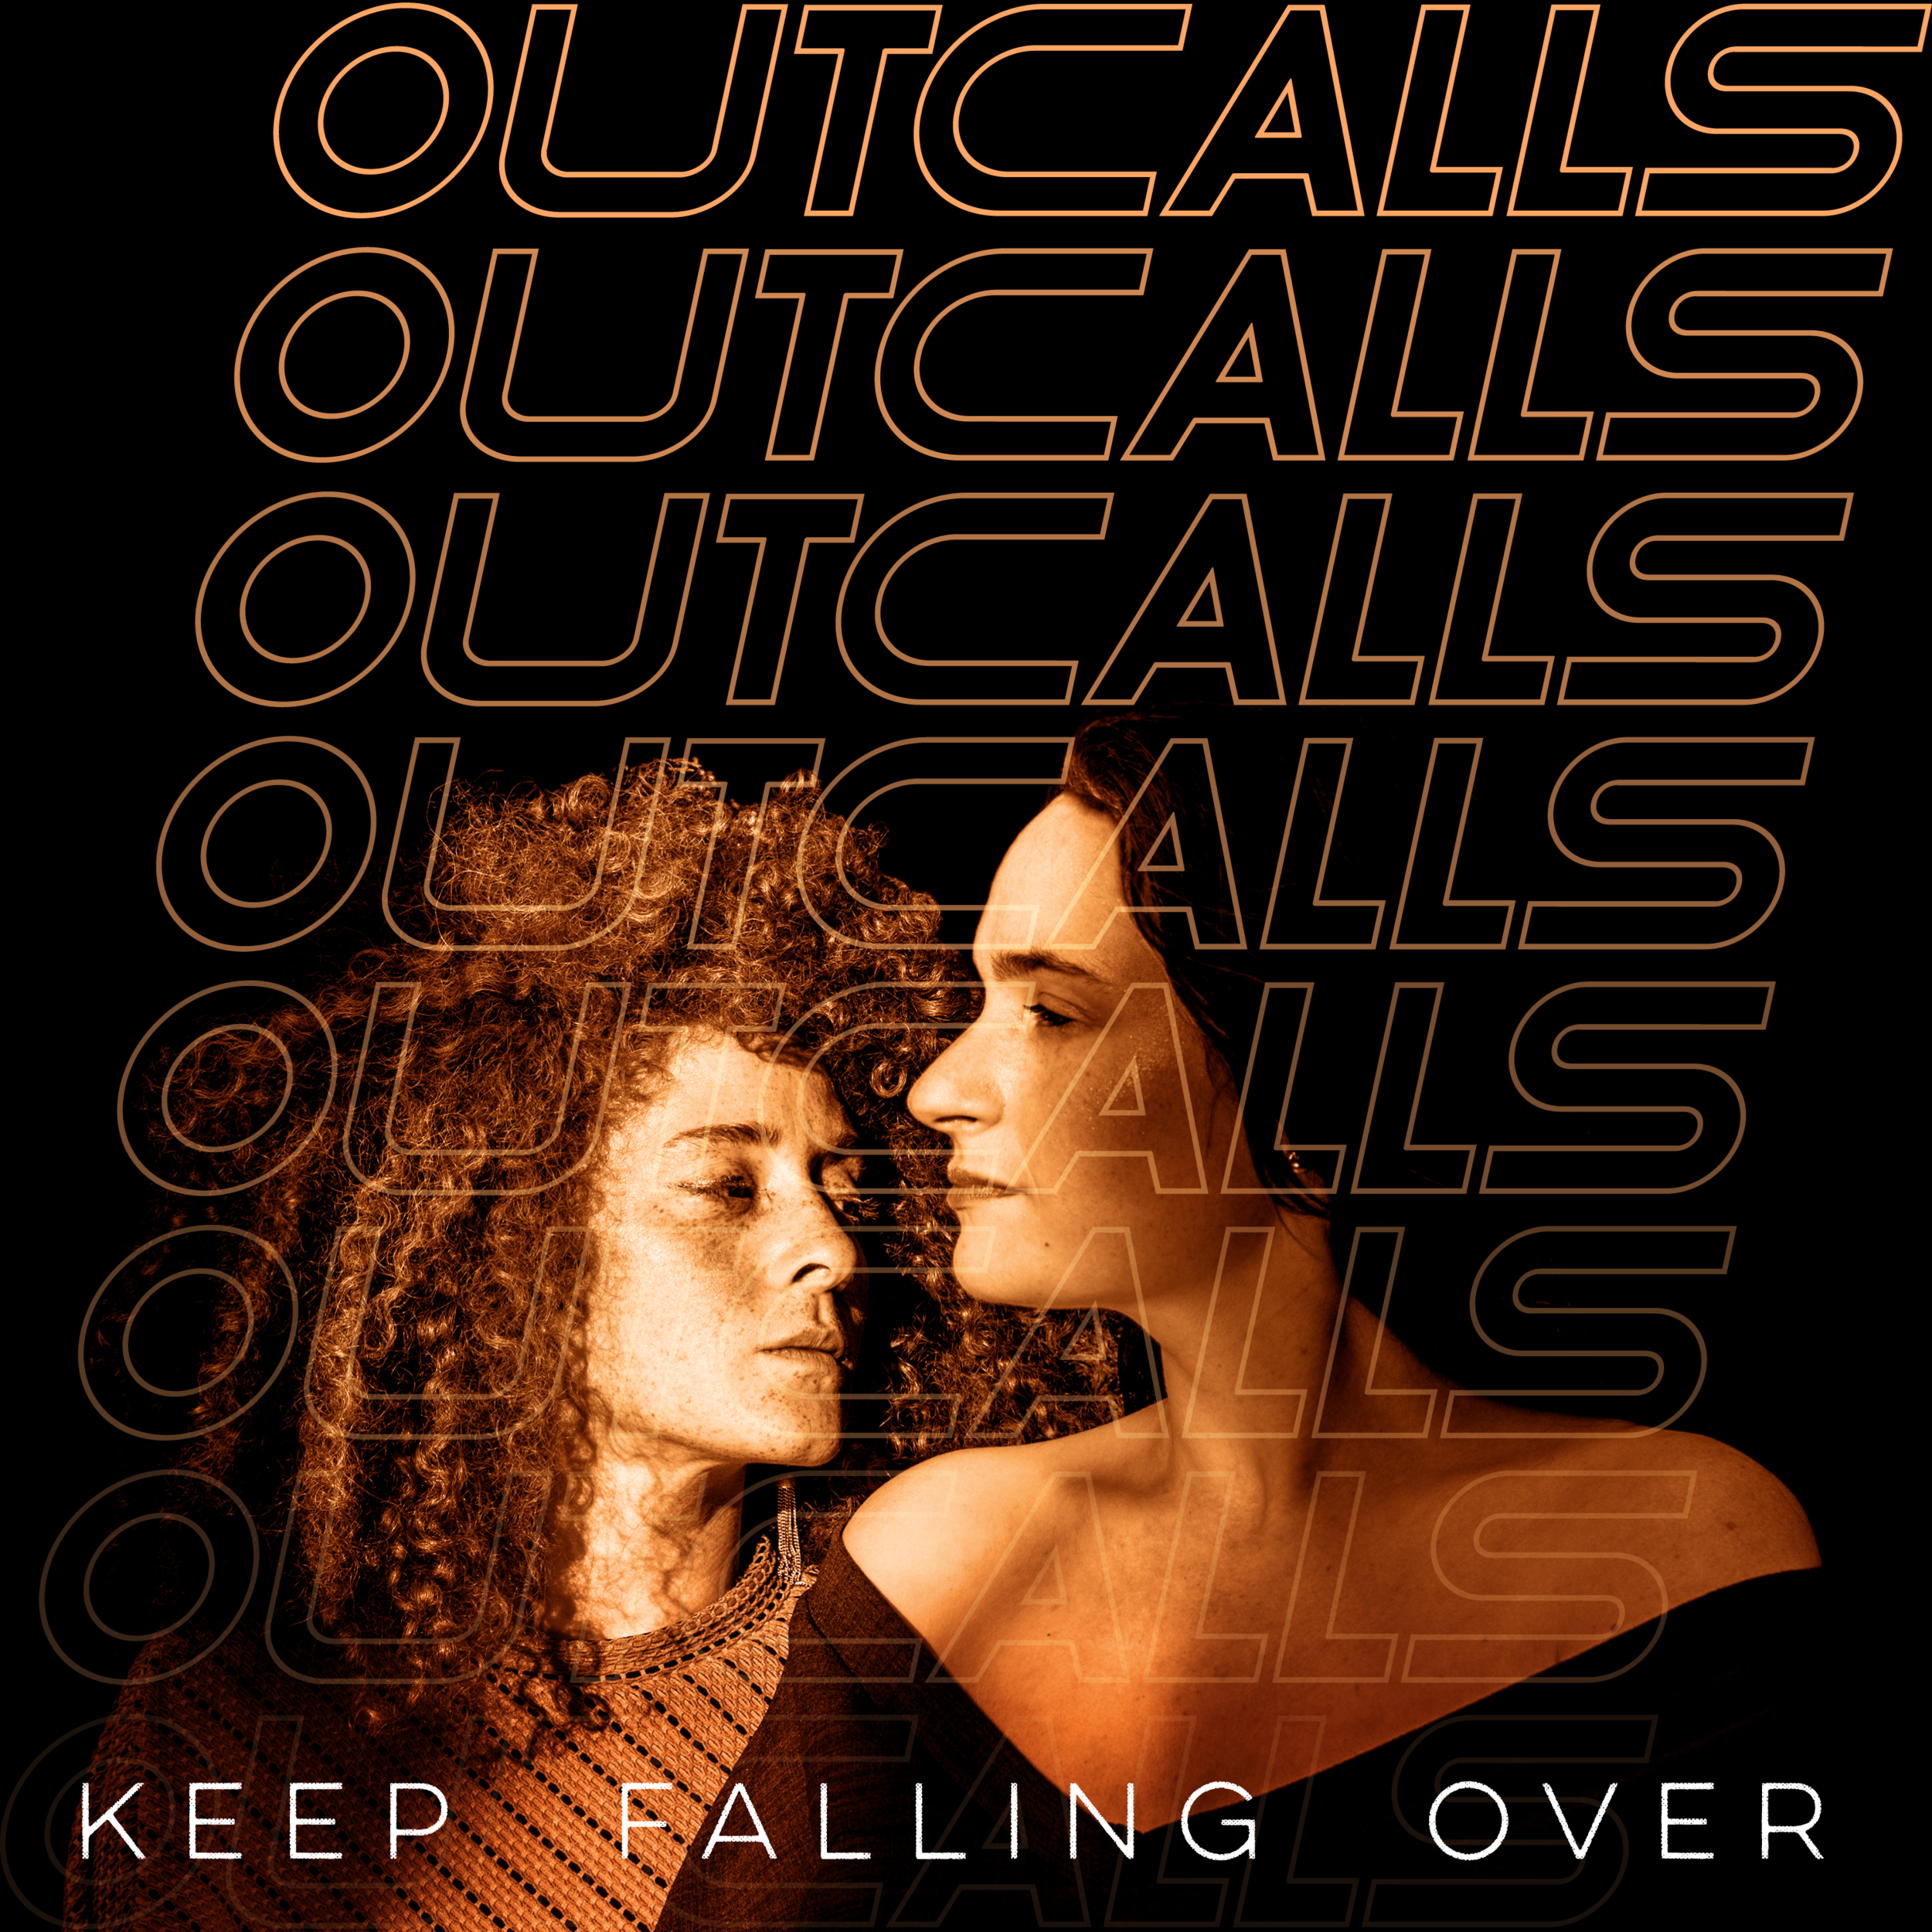 Outcalls_Keep-Falling-Over_3000px_72ppi.png